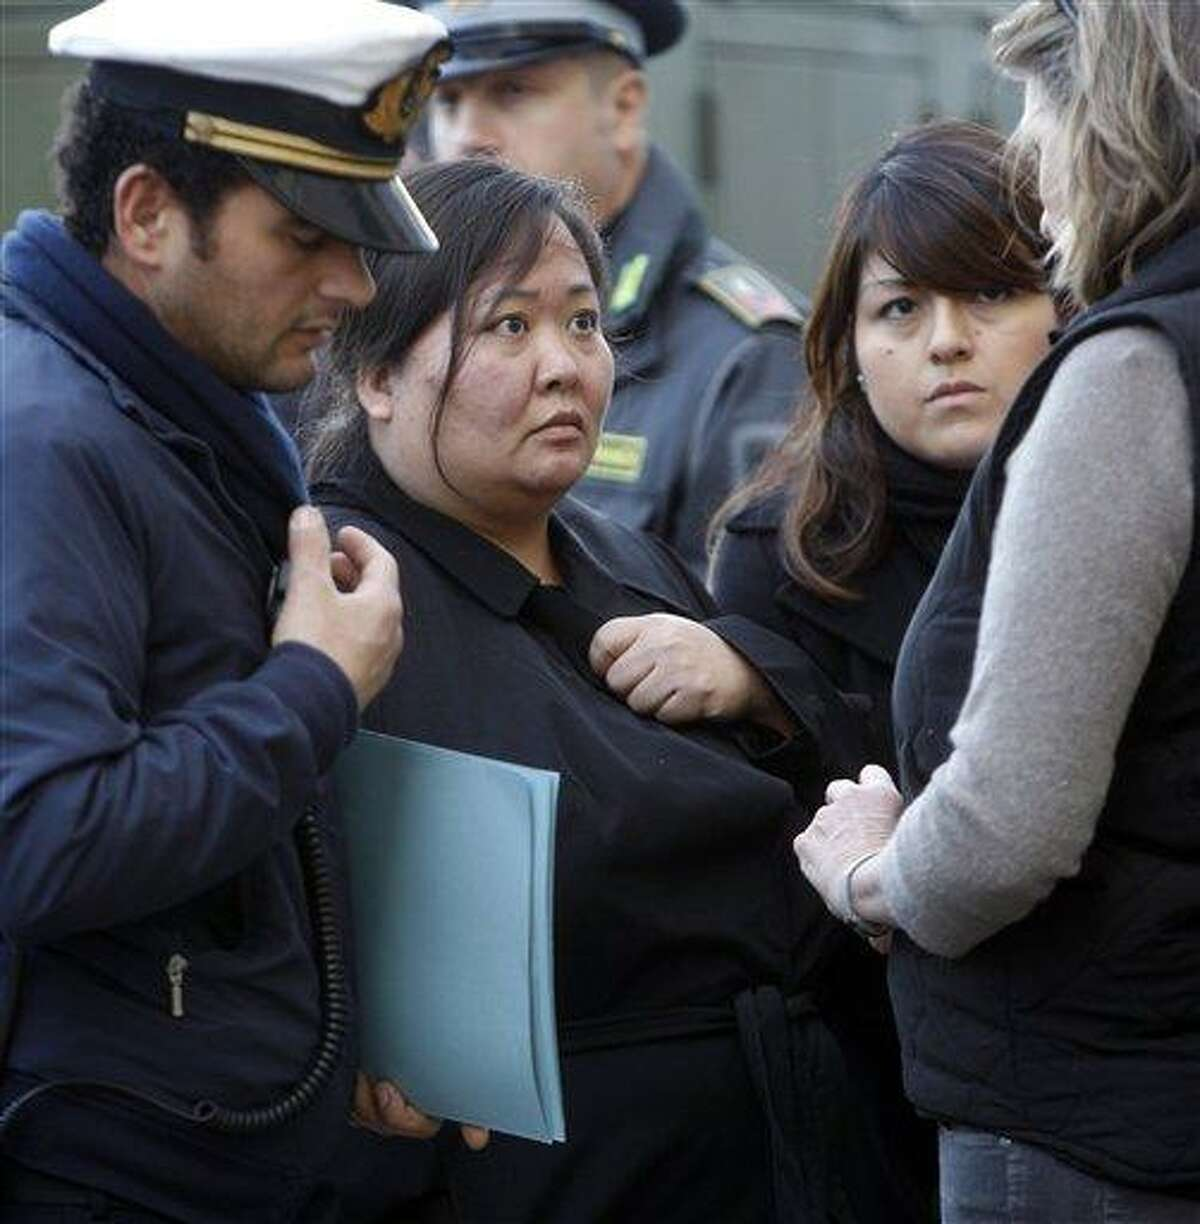 Sara Kim Heil, second left, daughter of Barbara and Gerald Heil, of White Bear Lake, Minn., both missing in the cruise ship Costa Concordia accident, talks to Italian authorities in the port of Tuscan island of Giglio, Italy, Jan. 22. Associated Press